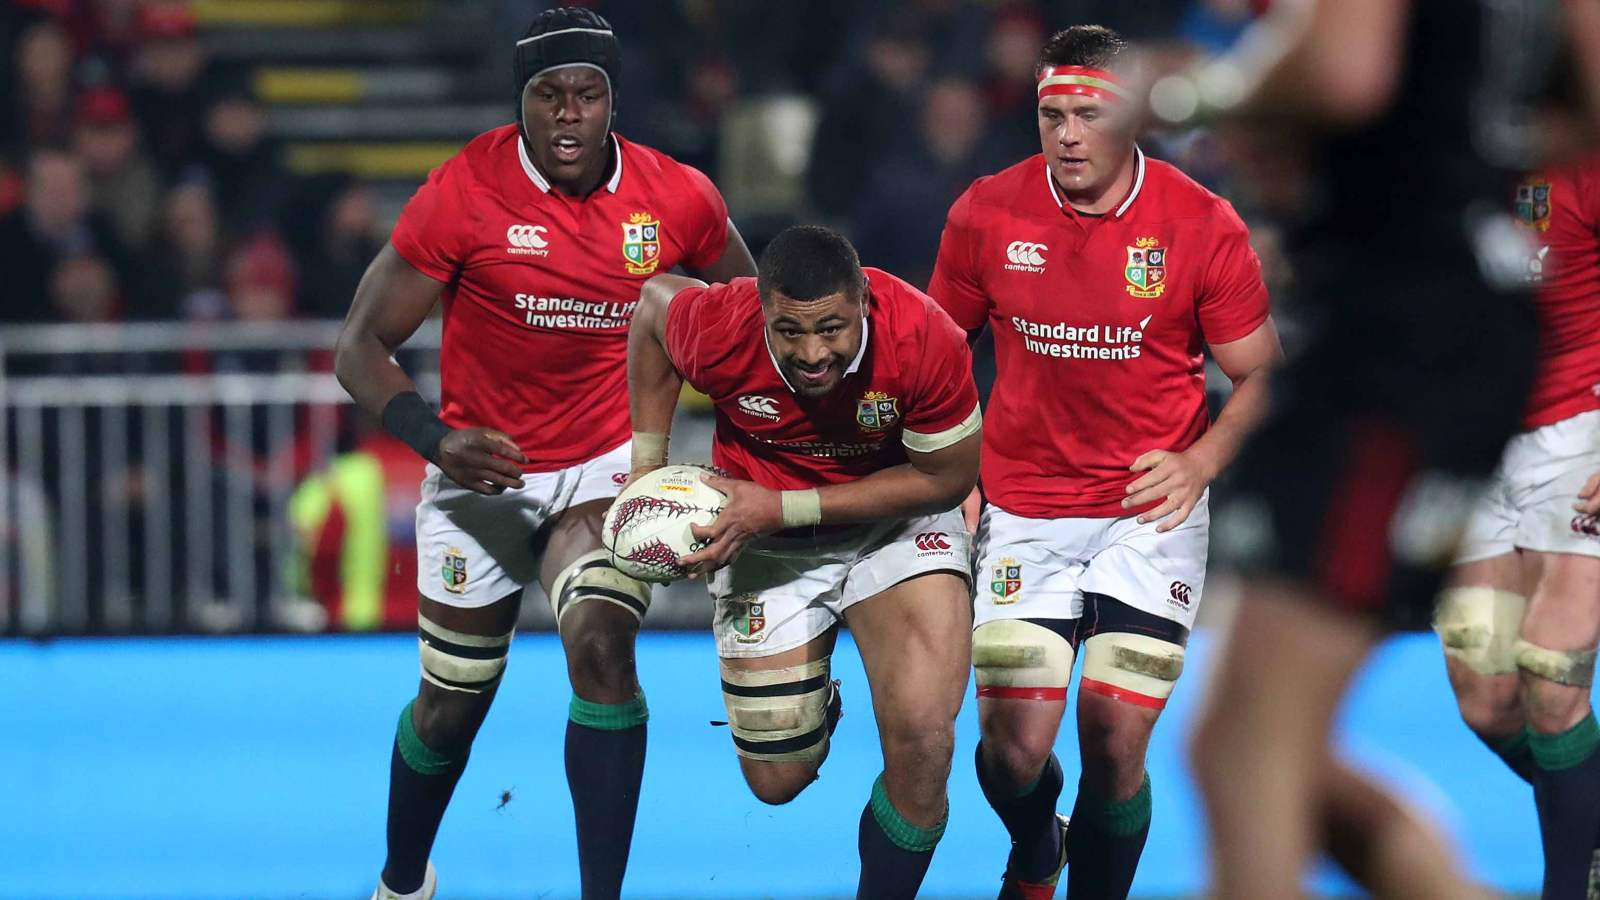 Injured Faletau ruled out of World Cup